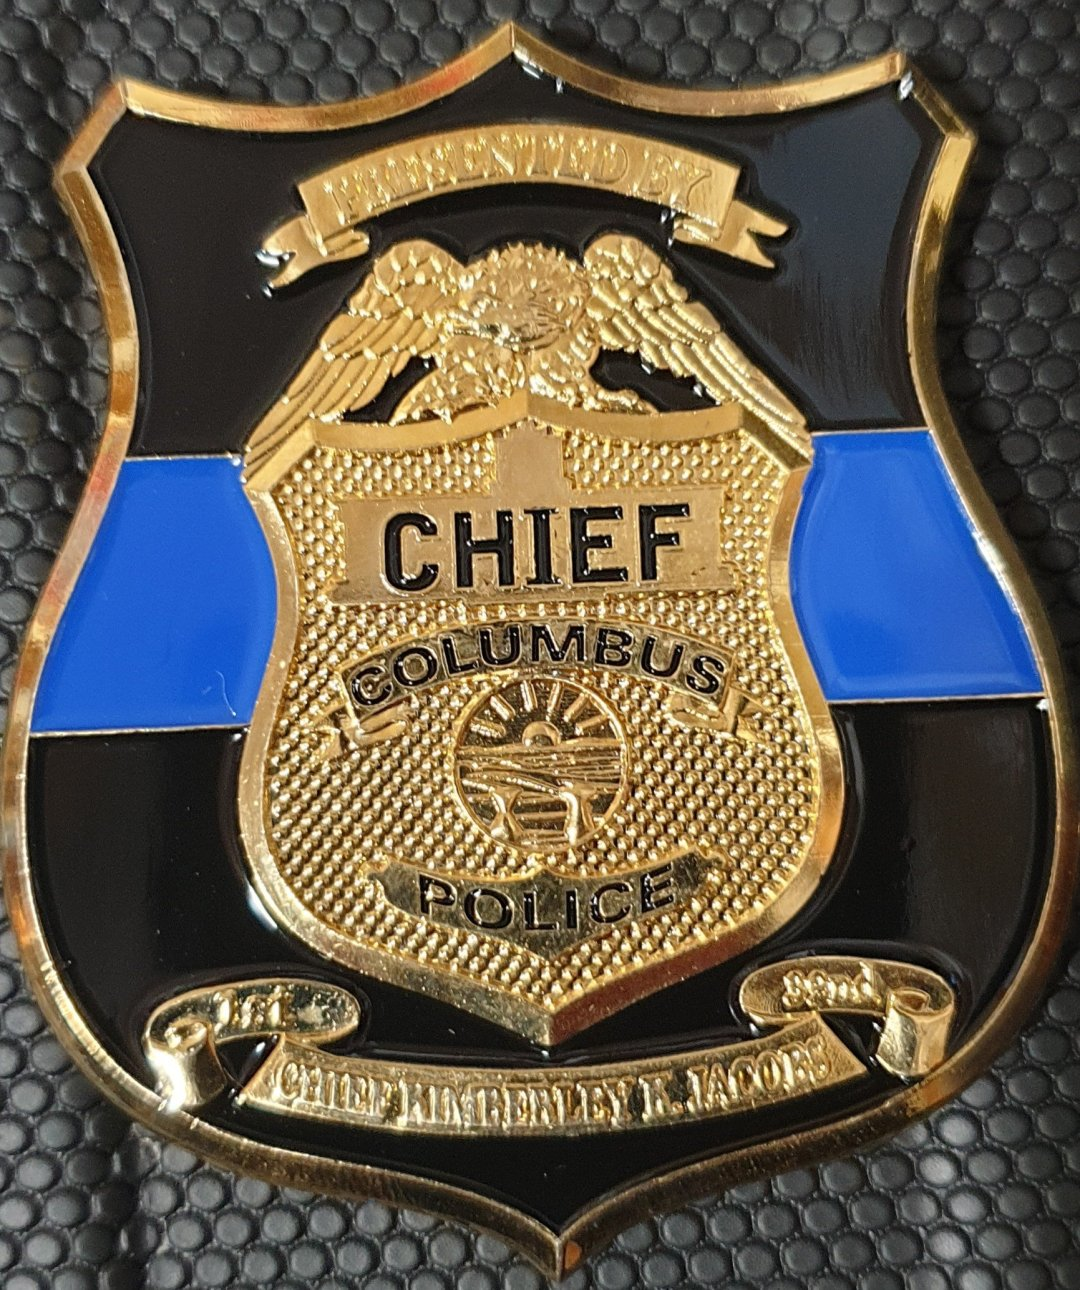 32nd Columbus PD Chief Custom Shaped Police Chief Coin By Phoenix Challenge Coins backside